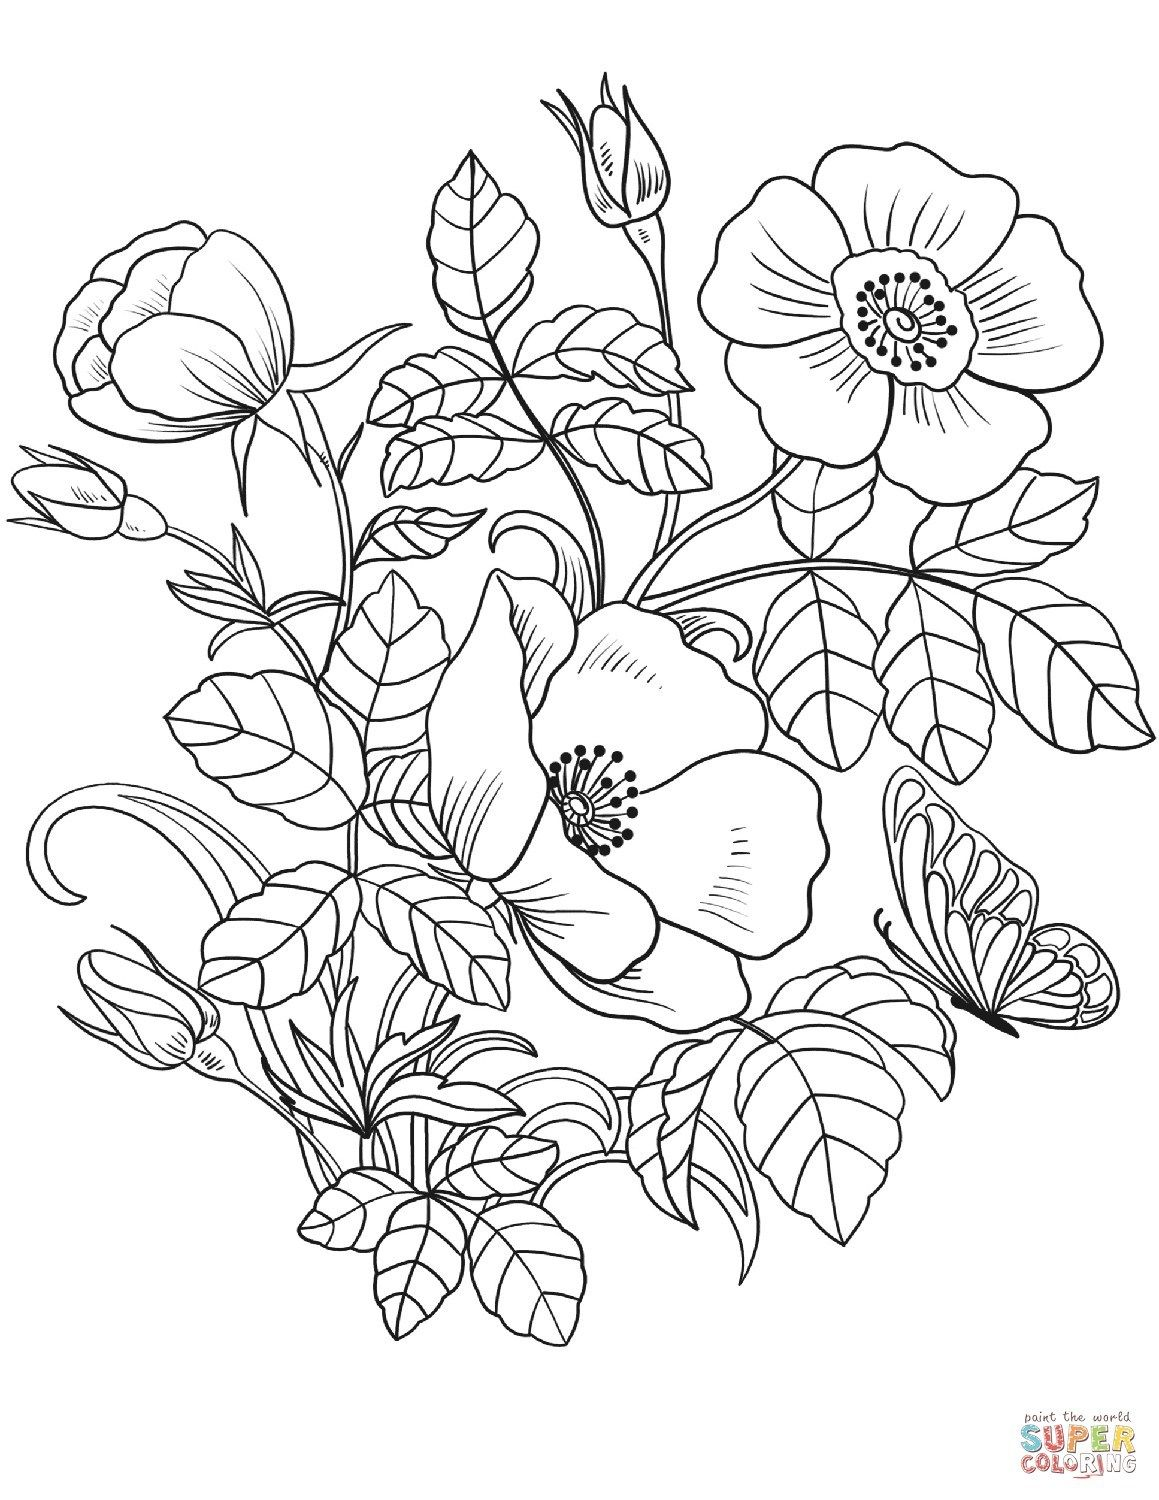 Spring Coloring Page Spring Flowers Coloring Page Free Printable Coloring Pages Davemelillo Com Flower Coloring Sheets Spring Coloring Sheets Printable Flower Coloring Pages